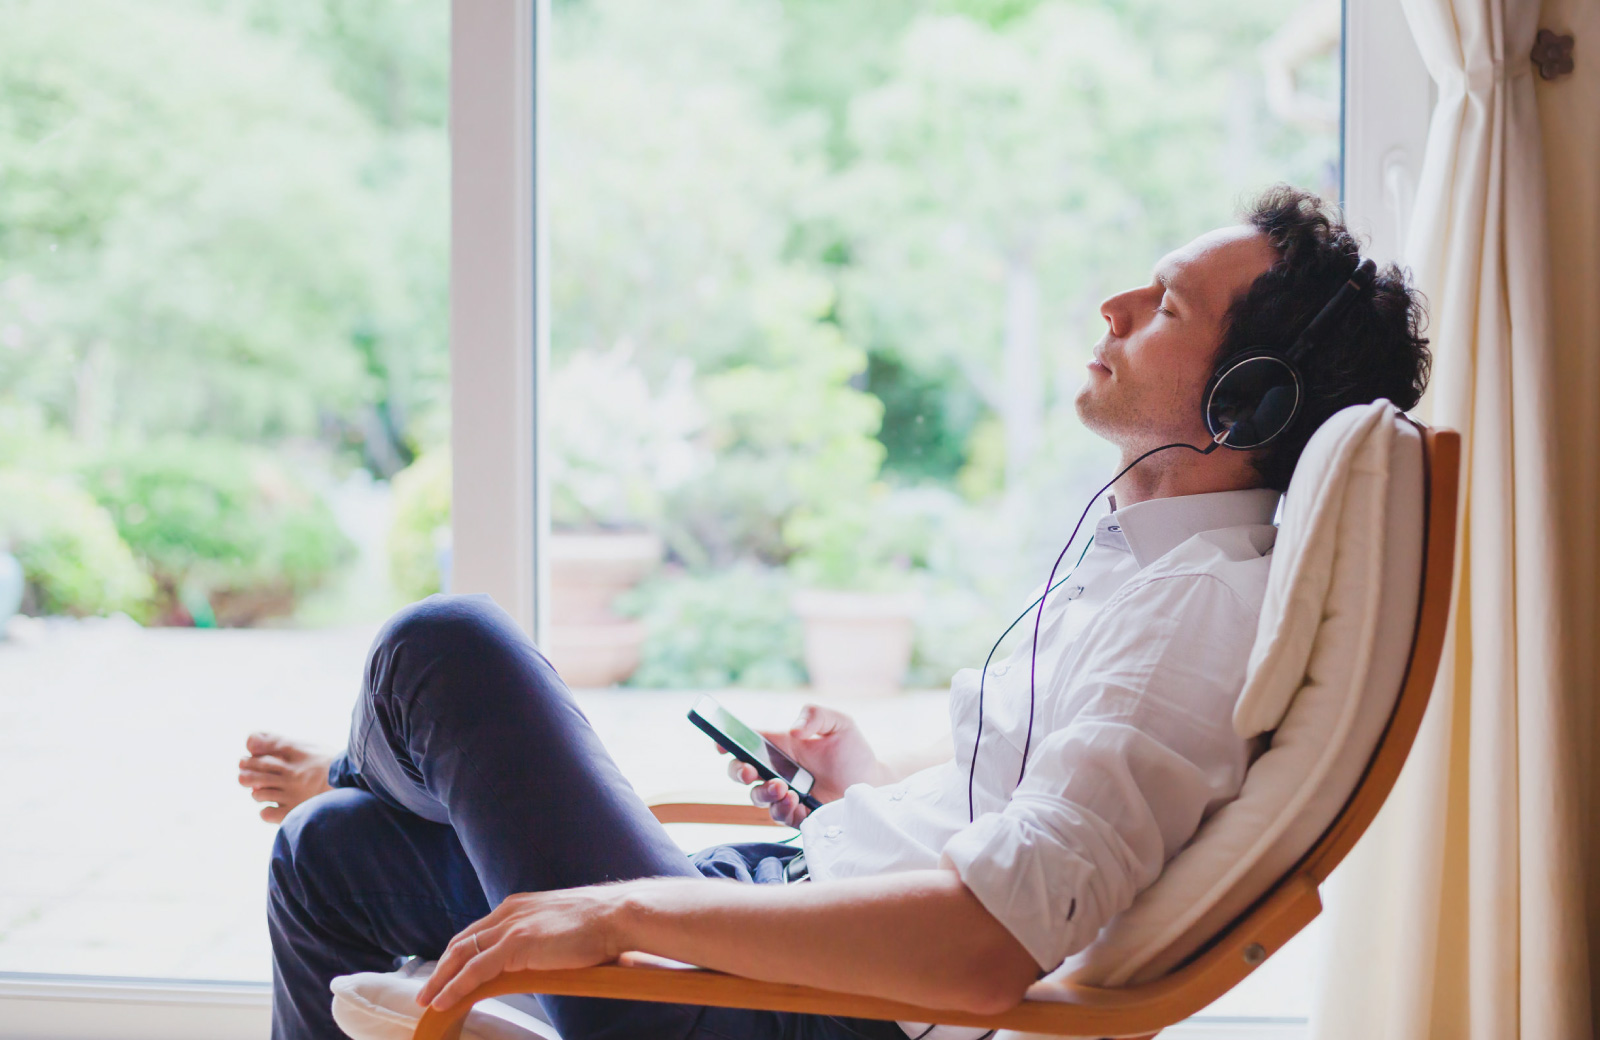 man with earphones relaxing on a chair